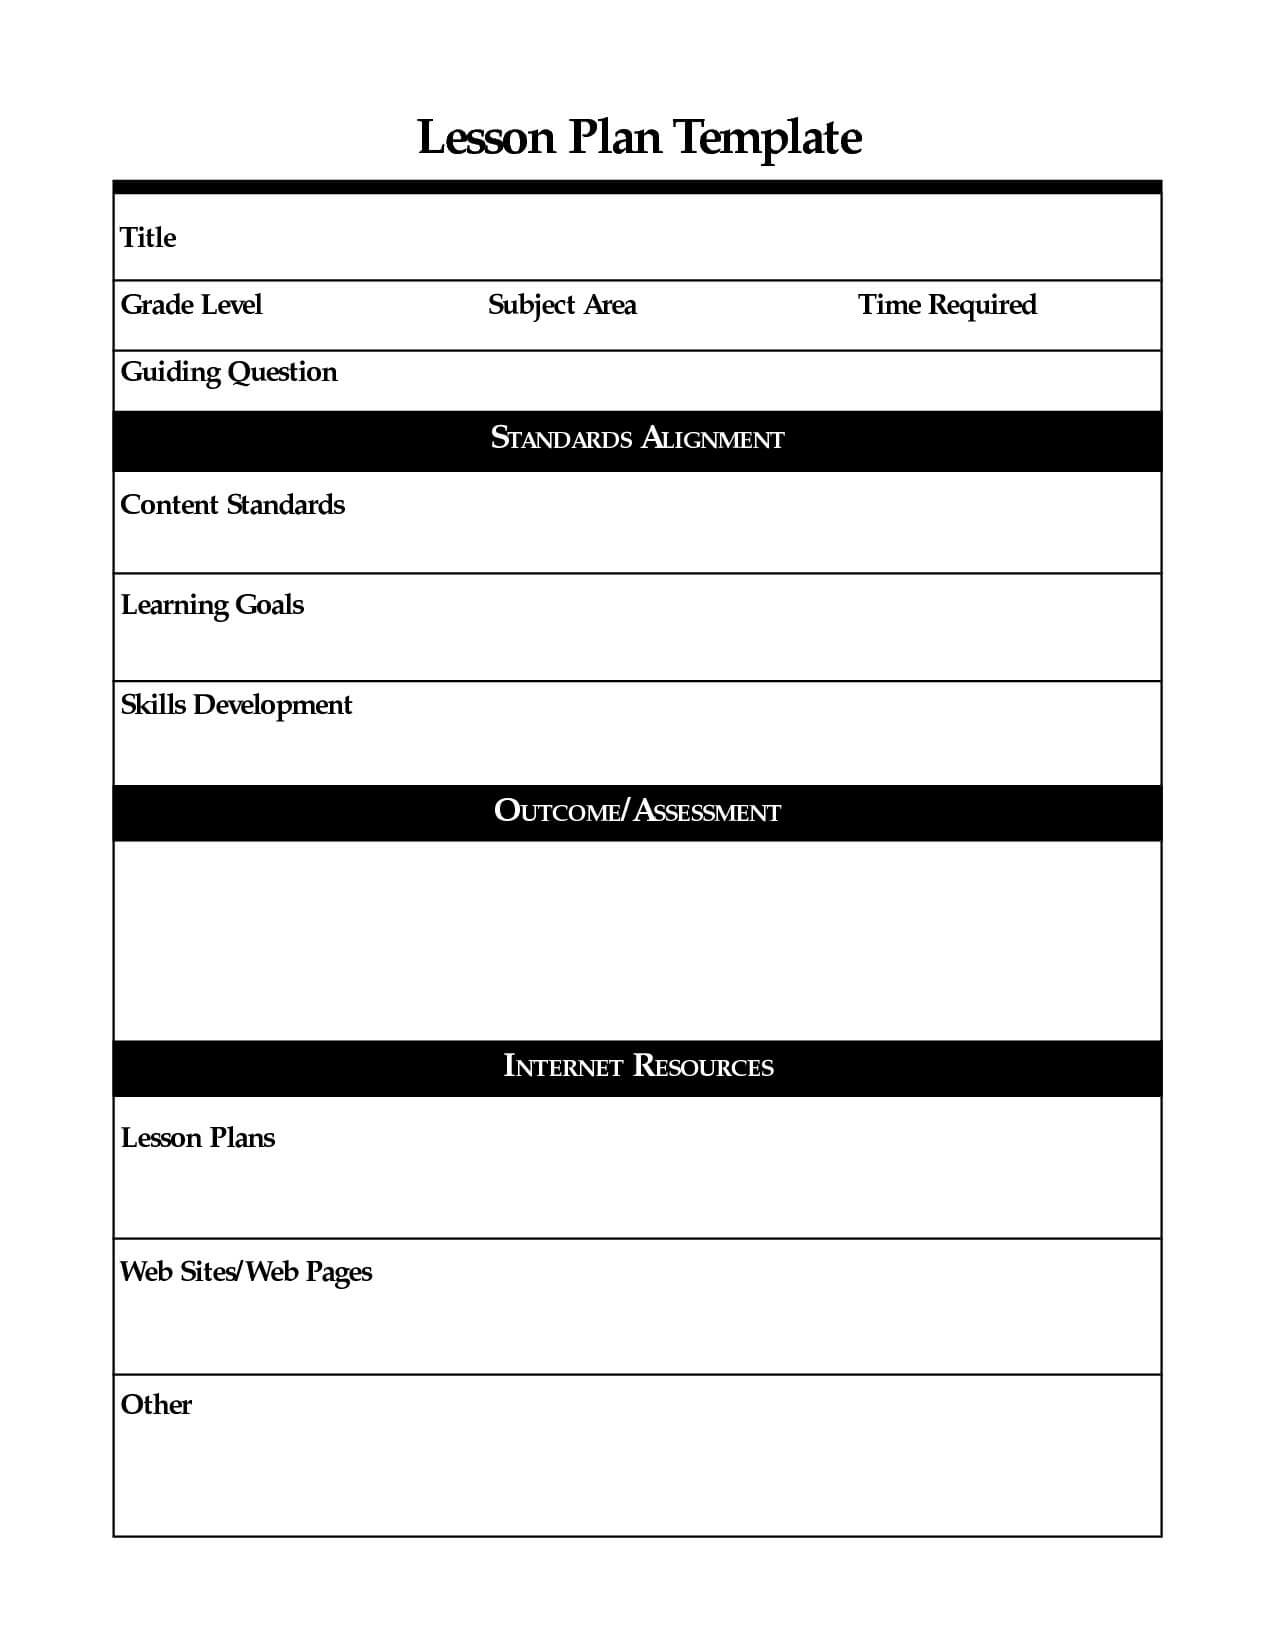 003 Template Ideas Madeline Hunter Lesson Plan Free Pertaining To Madeline Hunter Lesson Plan Template Word